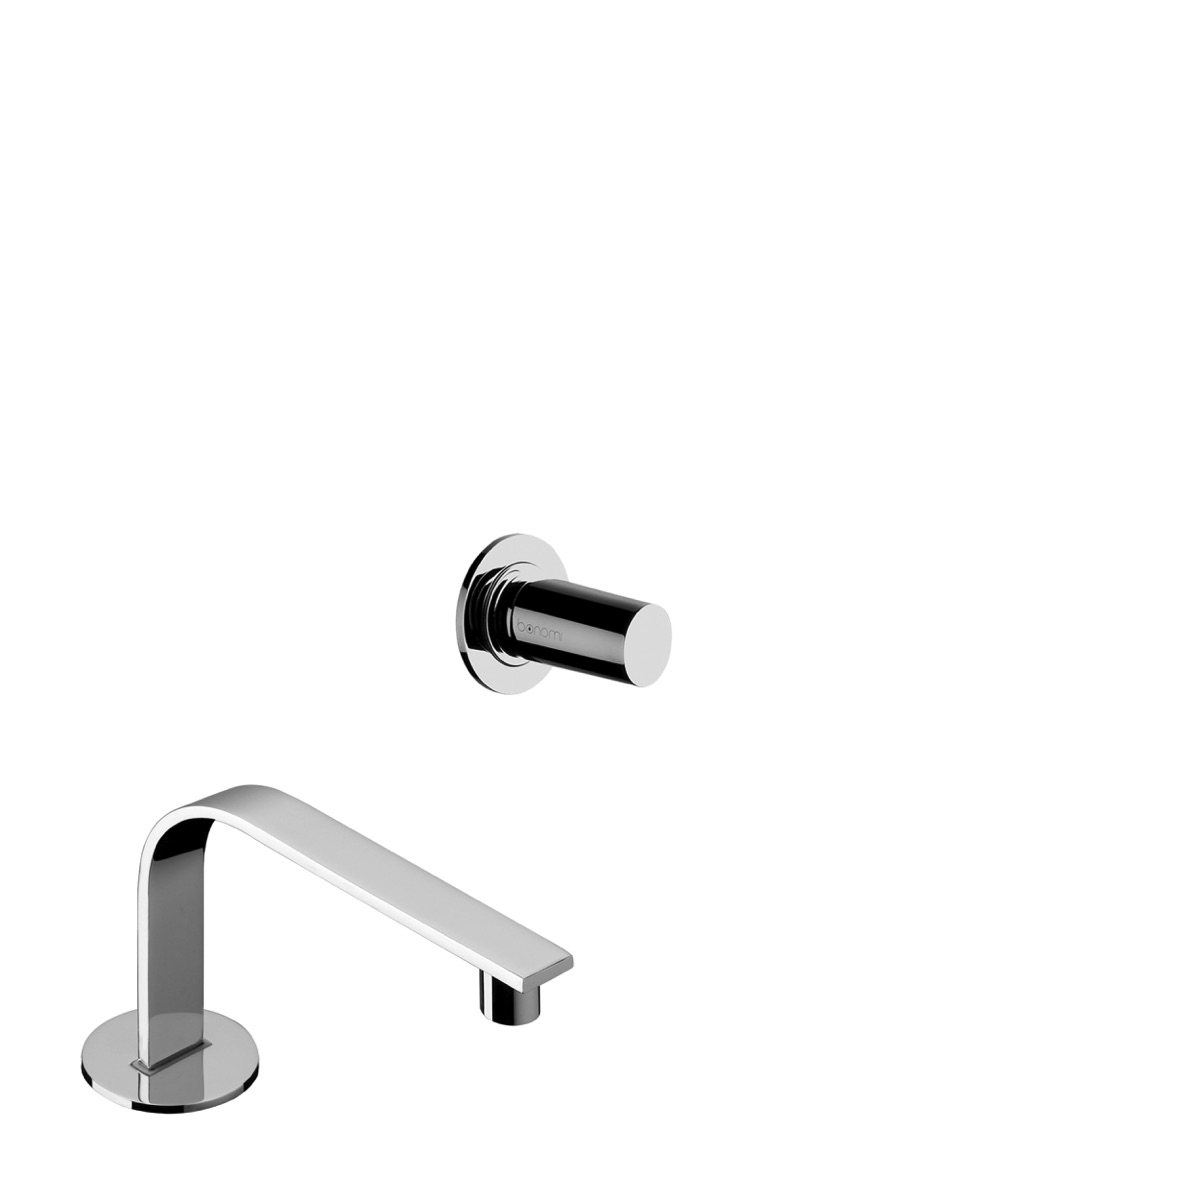 Wall mounted basin mixer with 112 mm deck mounted spout with waste